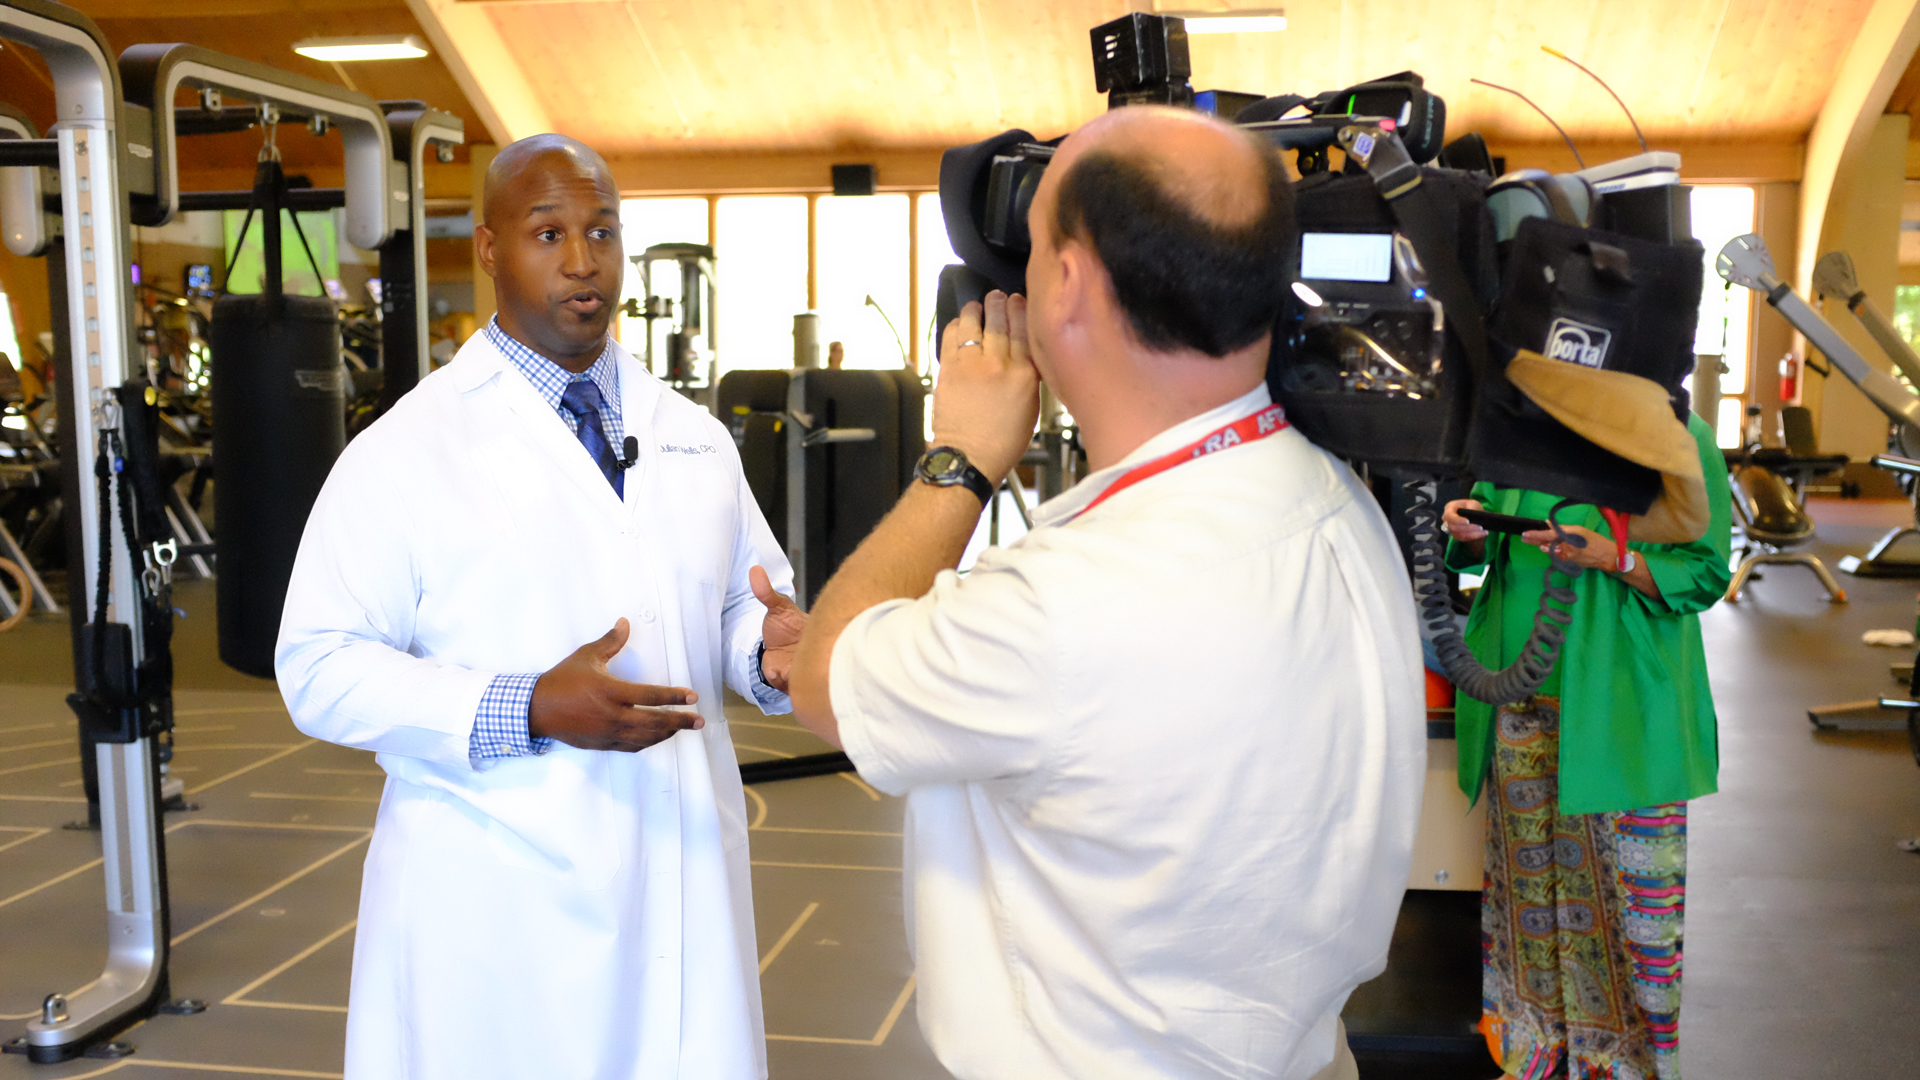 Julian Wells being interviewed by a news crew working on a story about patient Max Okun